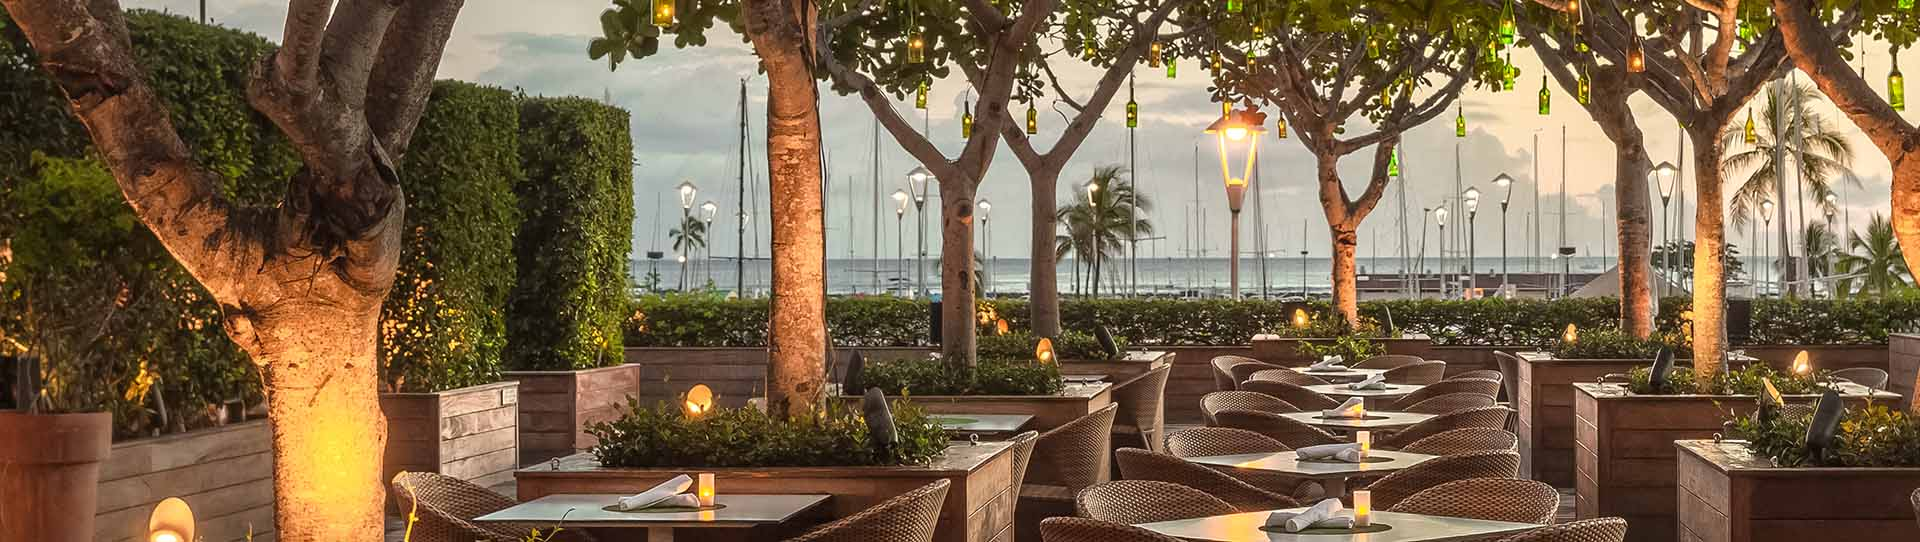 THE-GROVE-Restaurant-Bar-at-THE-MODERN-HONOLULU-tables-outside-night